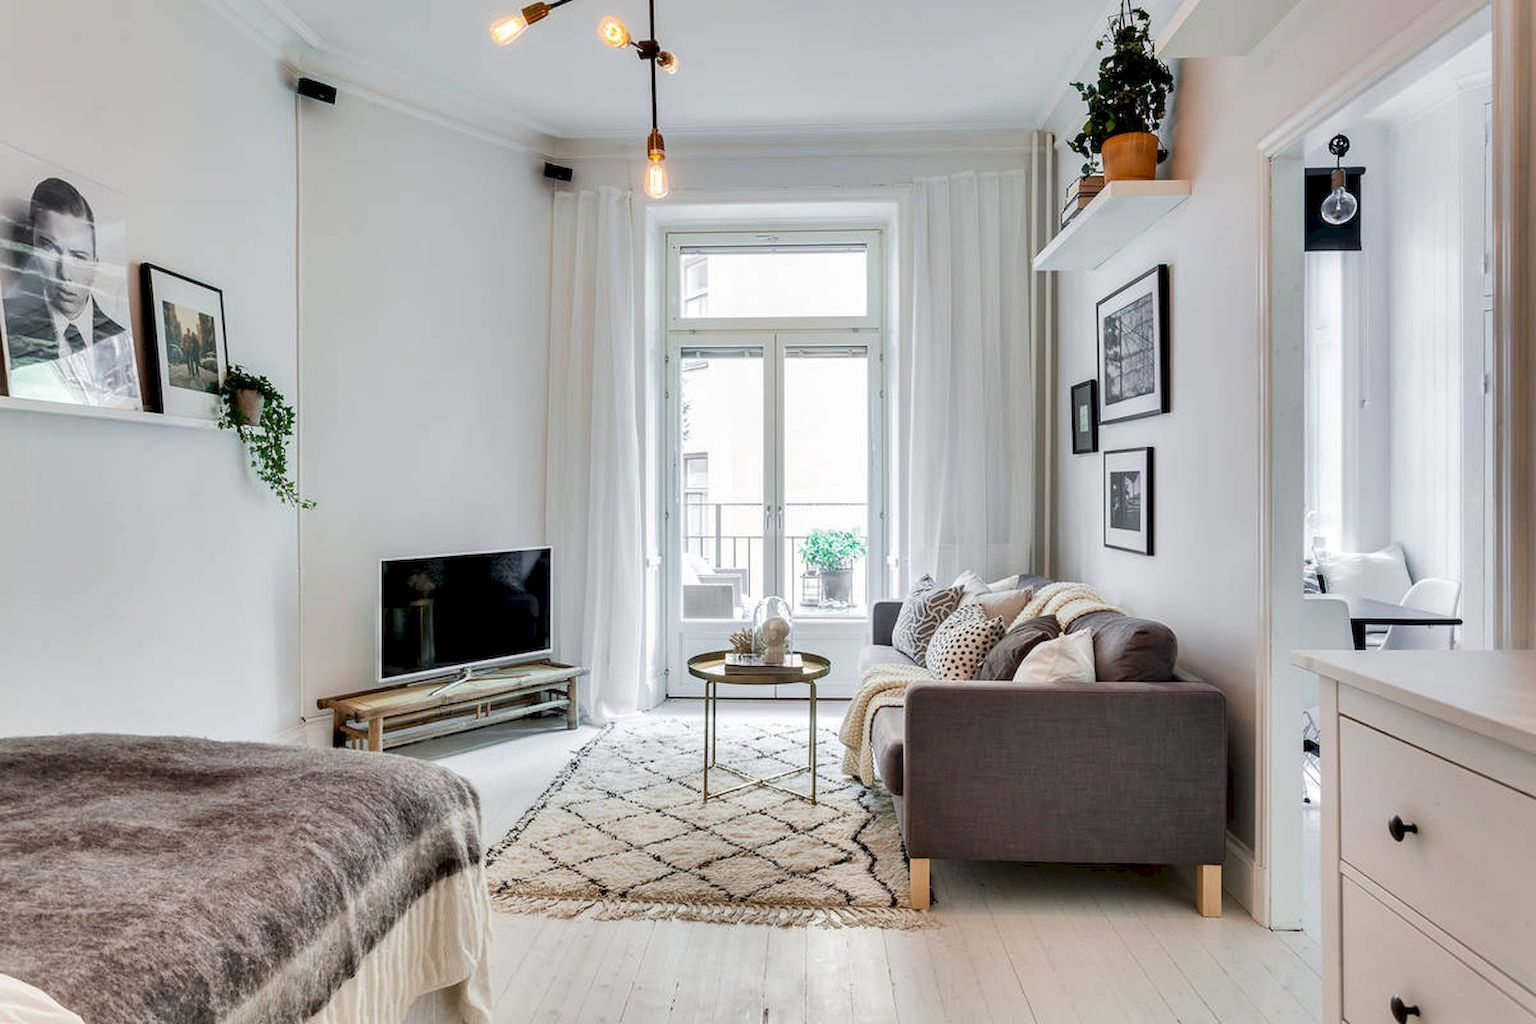 55 Inspiring Grey Studio Apartment Decorating Ideas on a Budget ...